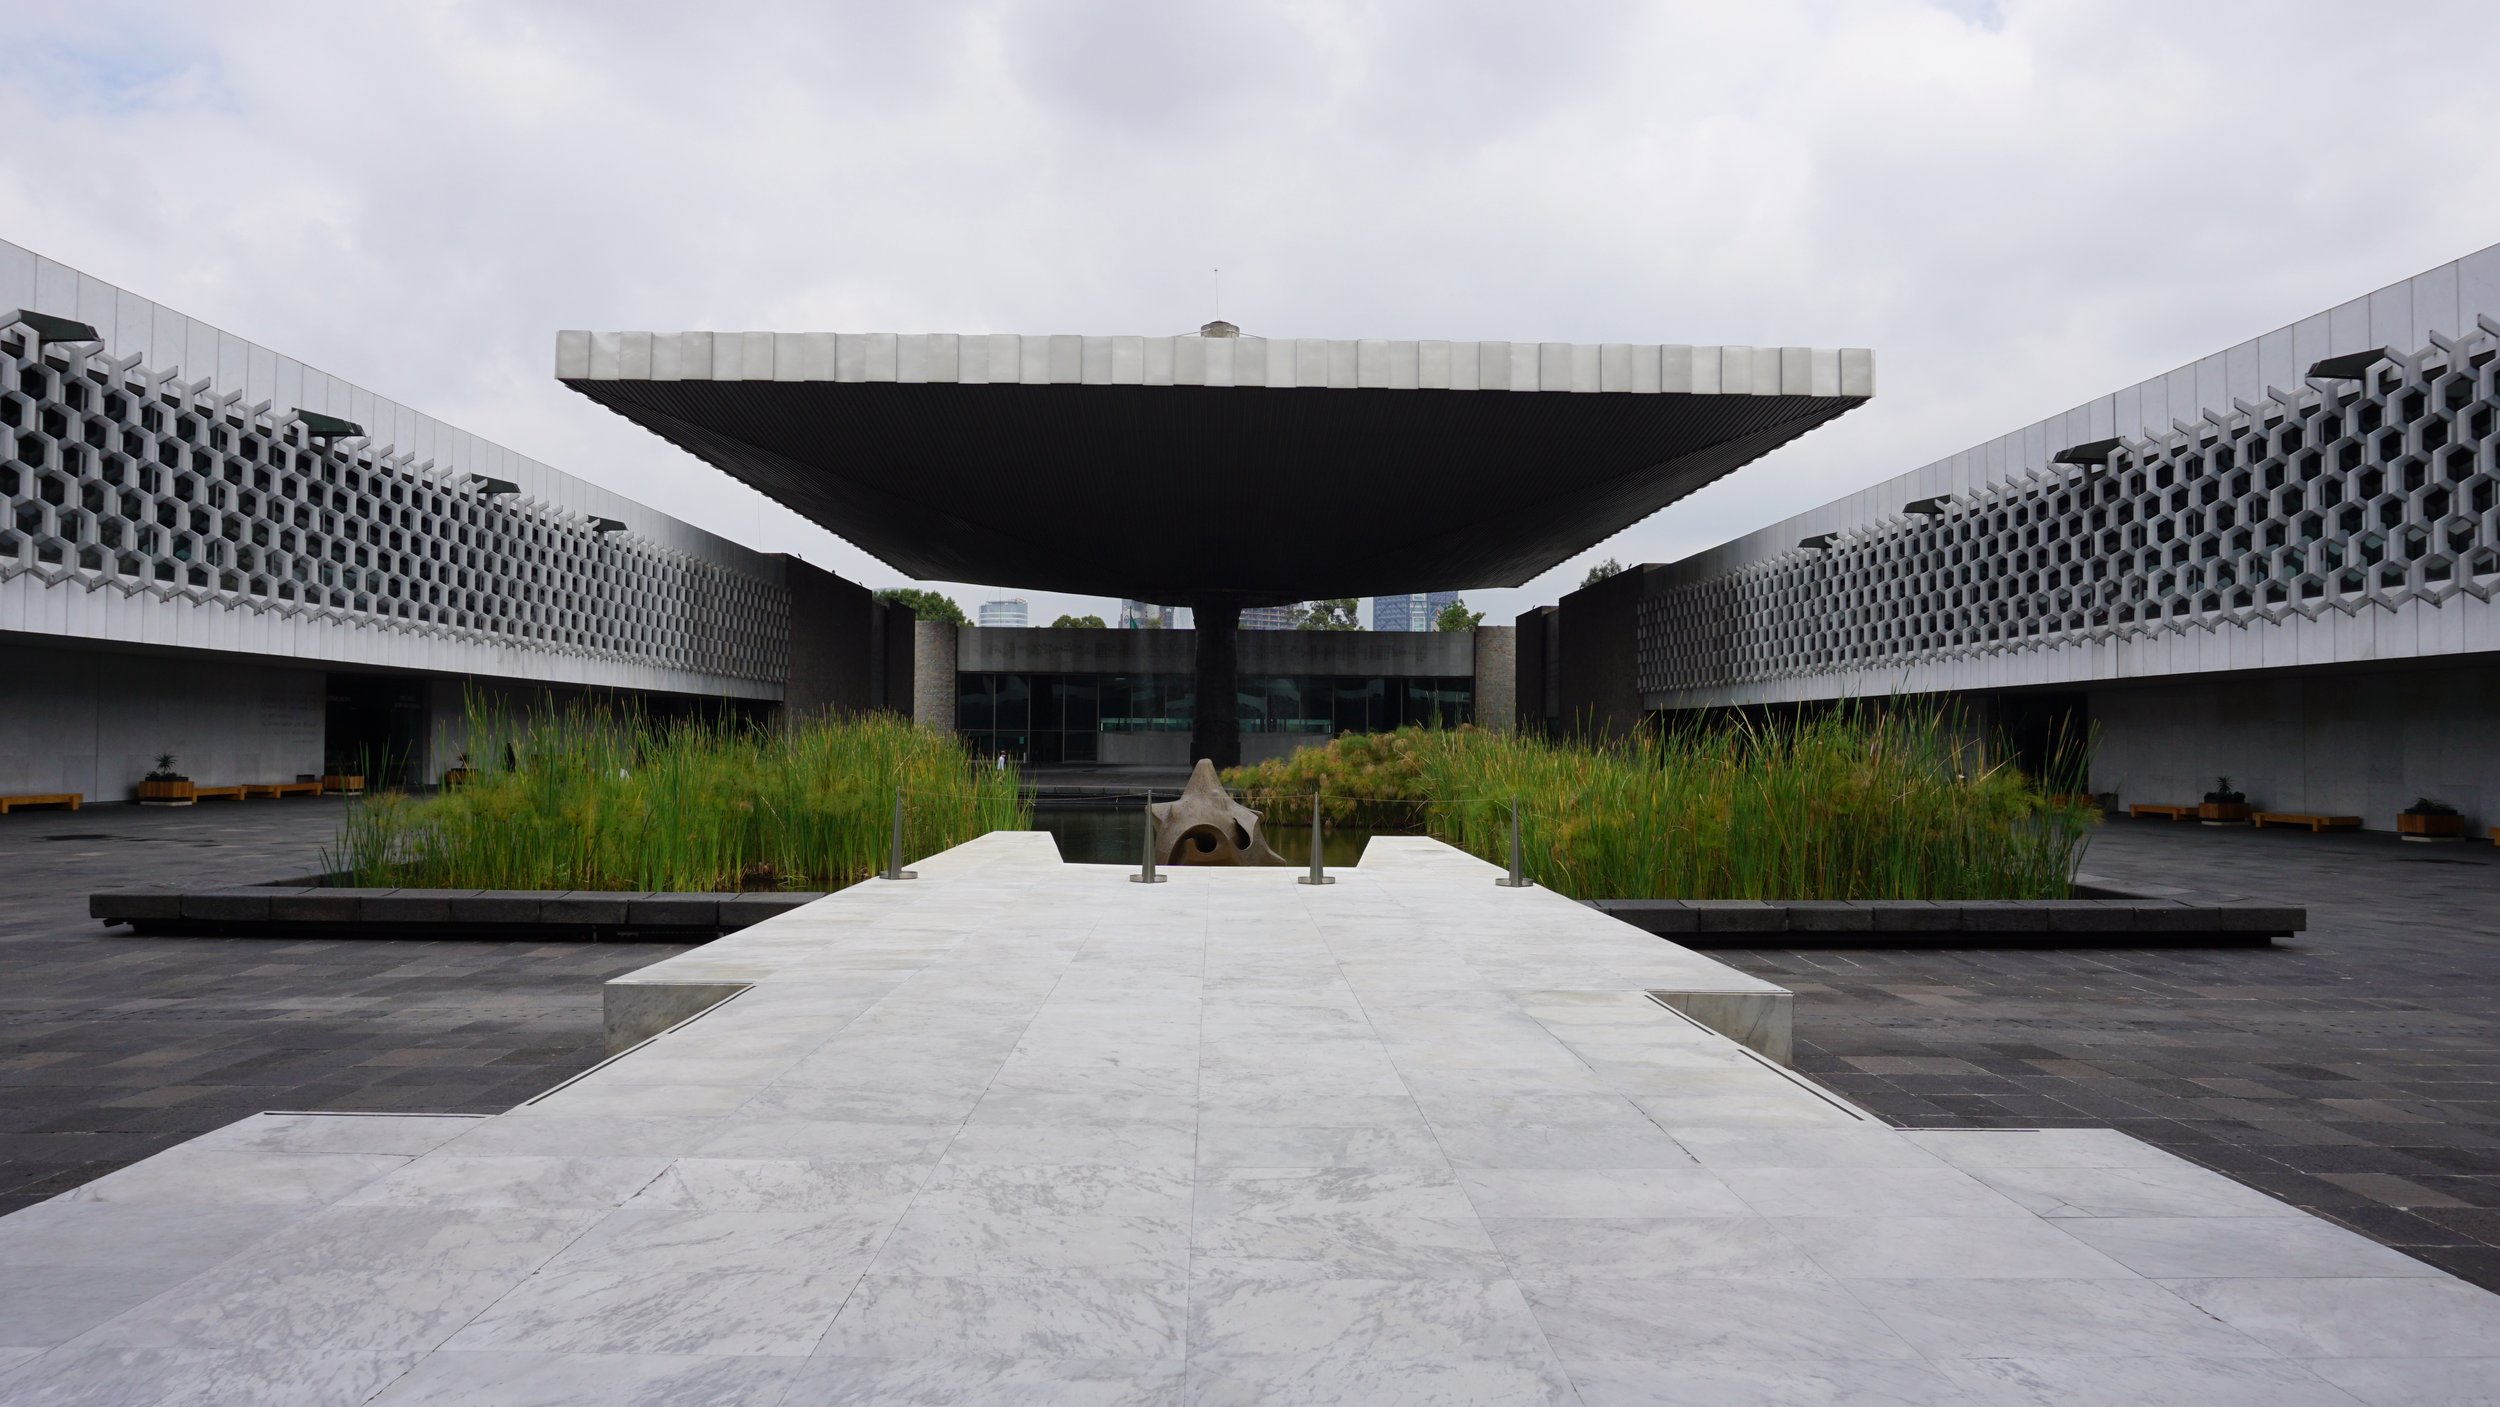 Museo De Antropologia - Pedro Ramirez Vazques' building is a work of art all on it's own. The architecture is simply stunning. I literally sat here, admiring the buildings' lines and details, the people walking in and out for over an hour.